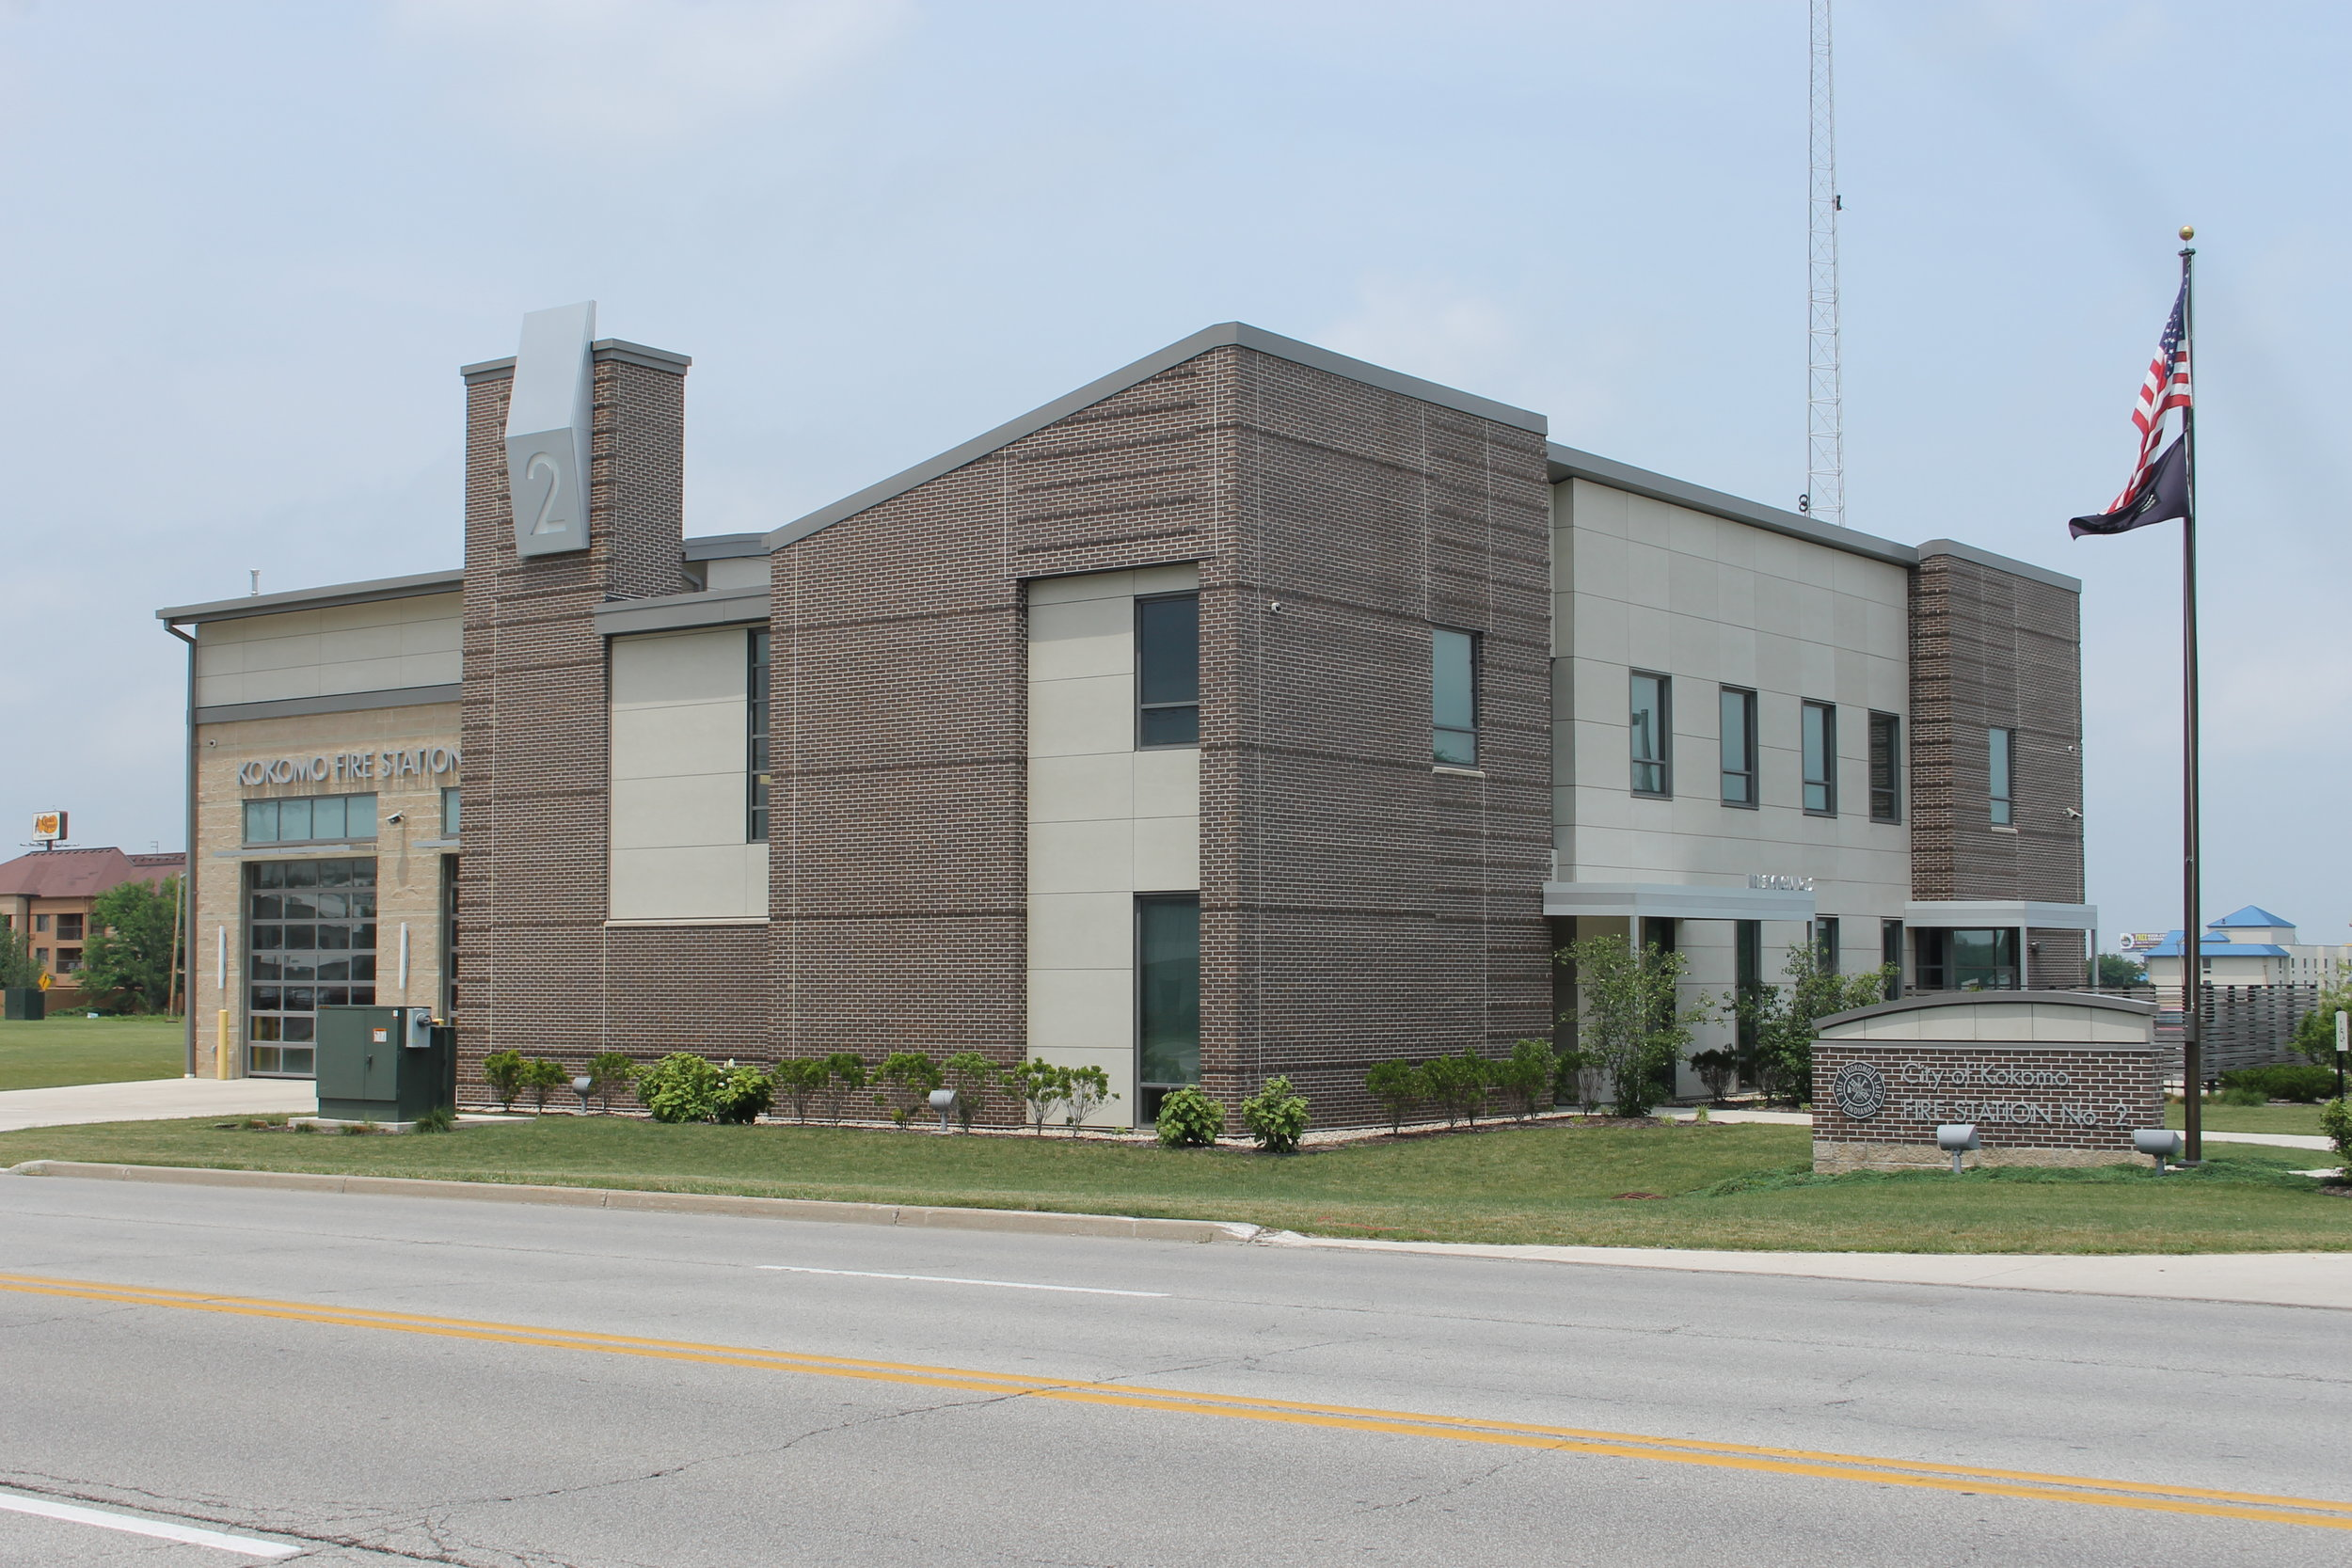 Kokomo Fire Station #2